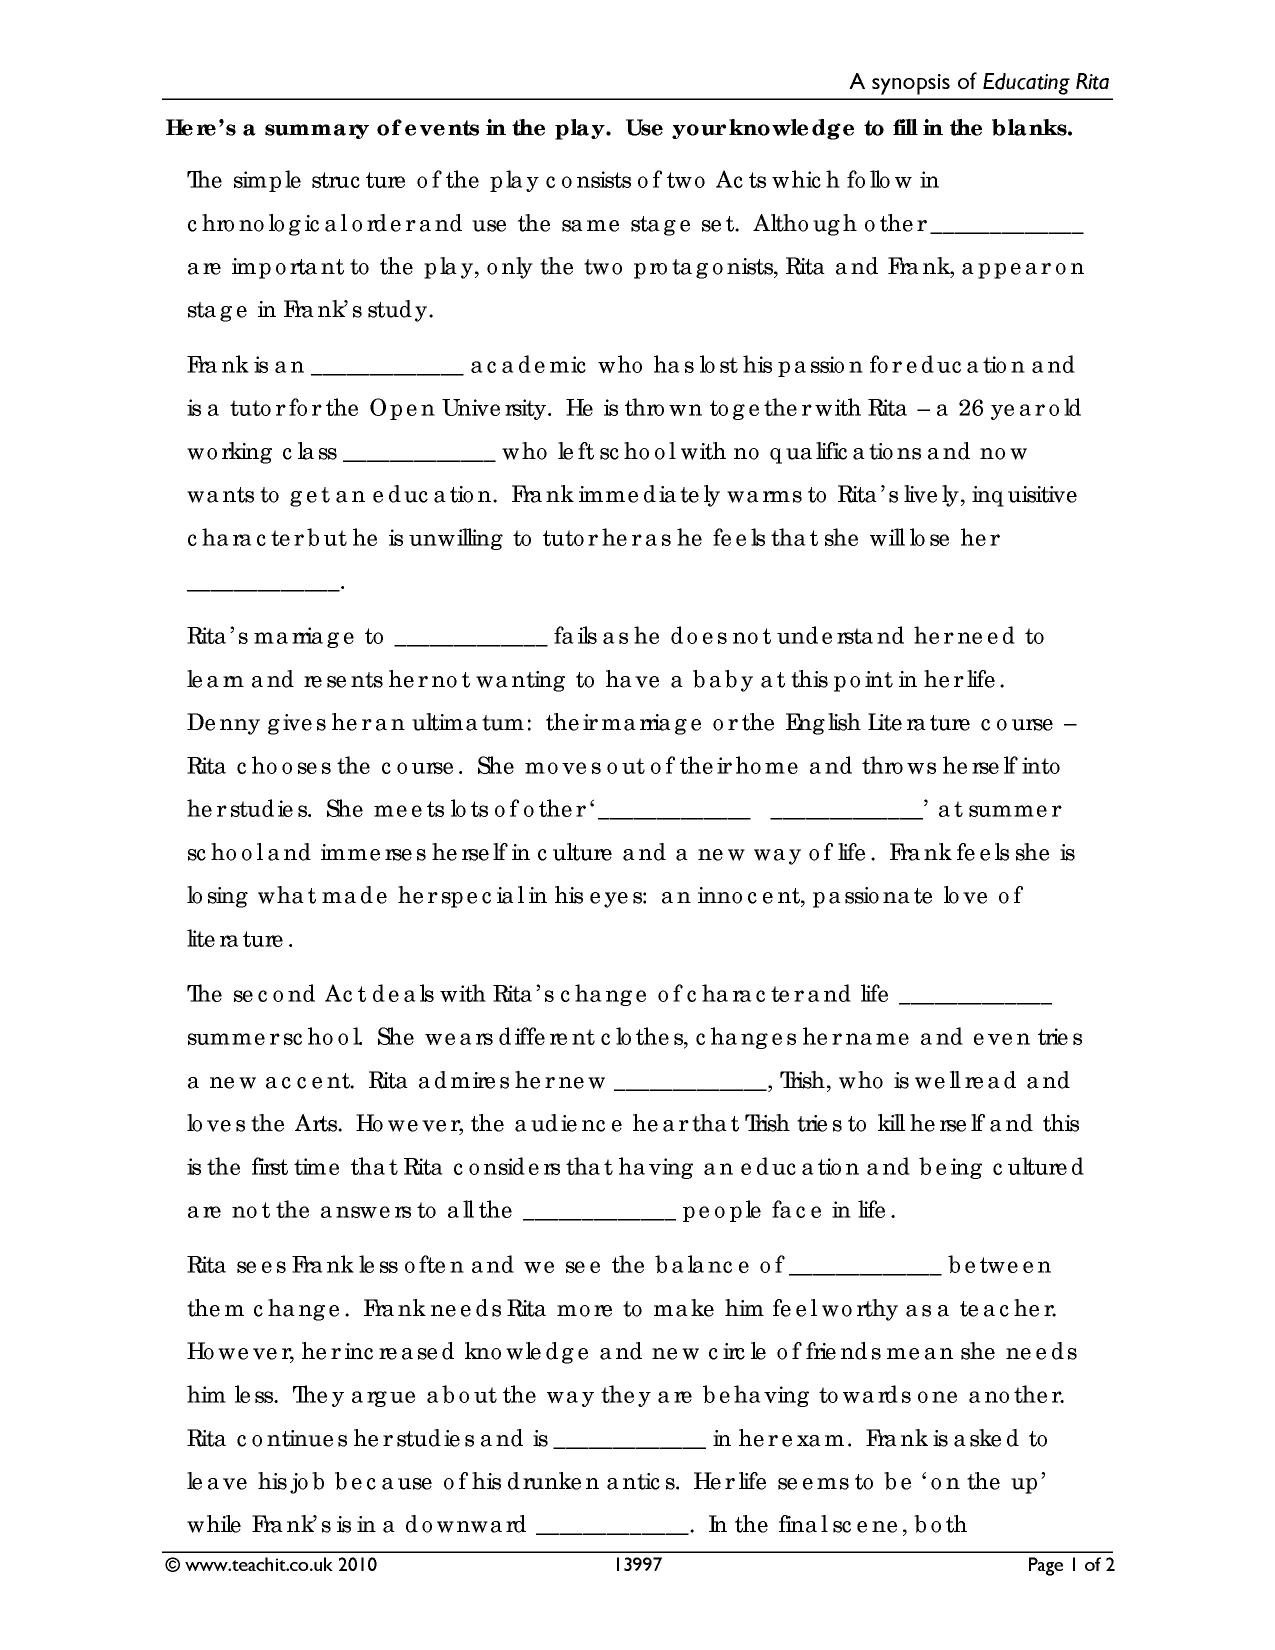 the comedy in educating rita is clash of cultures essay Educating rita deals with many cultural educating rita – willy russell essay sample and provide one with few examples of the clash of working class and.